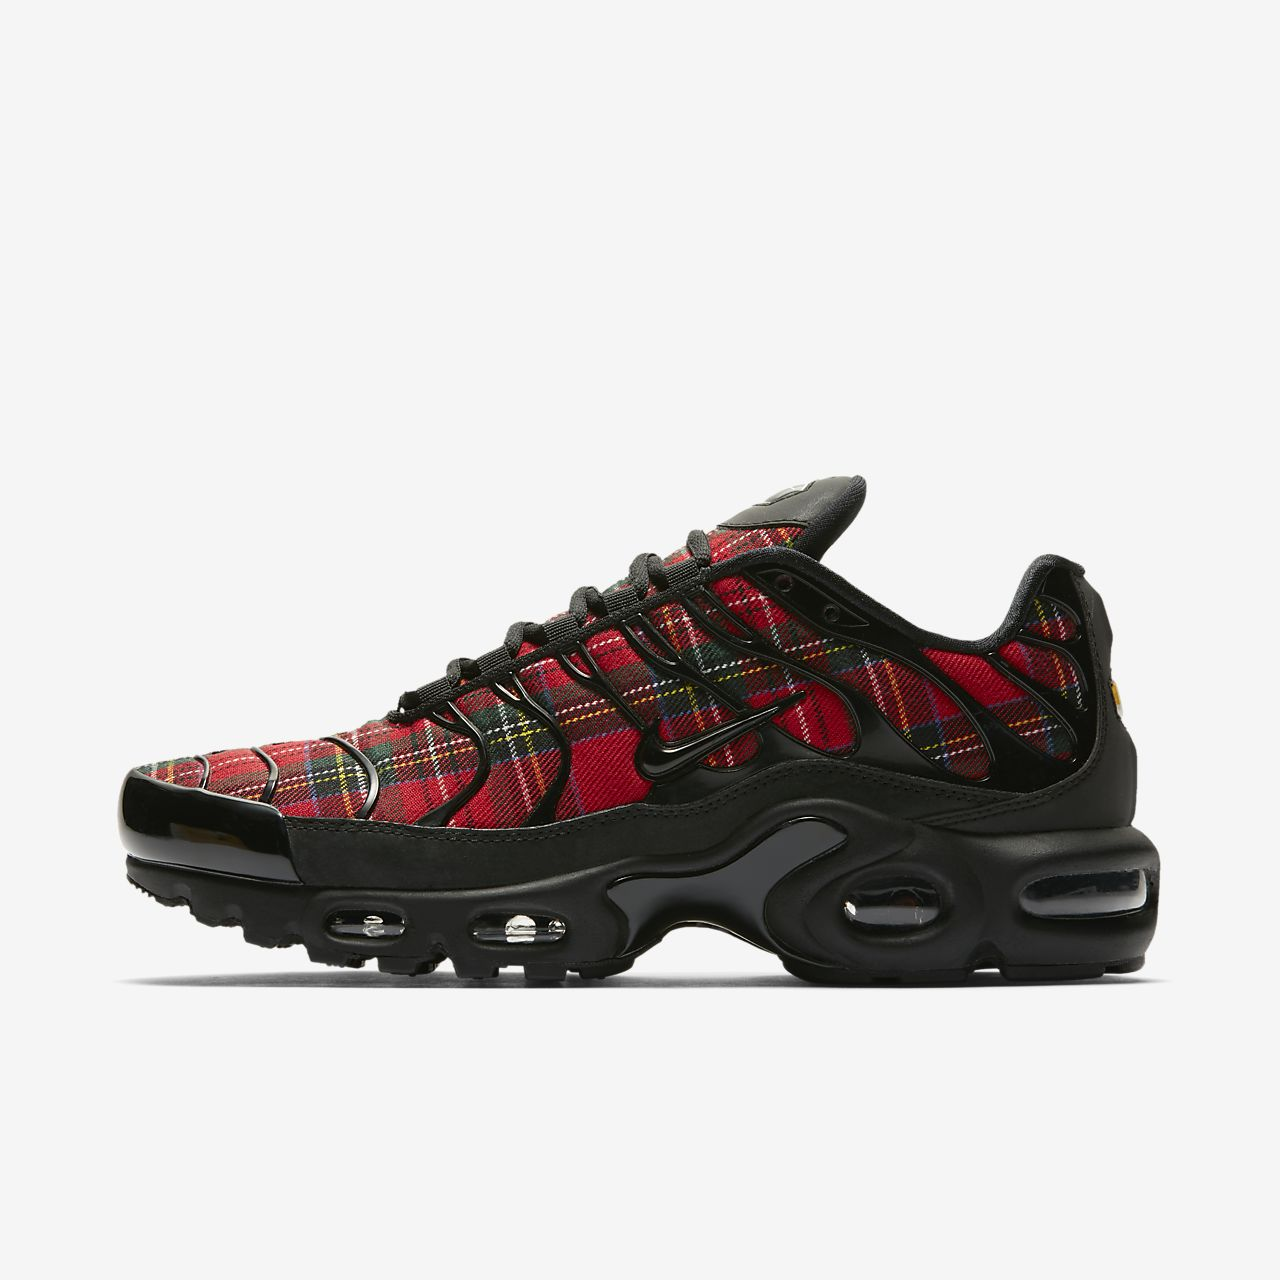 f9ddefb1e43b54 Nike Air Max Plus TN SE Tartan Women s Shoe. Nike.com CA